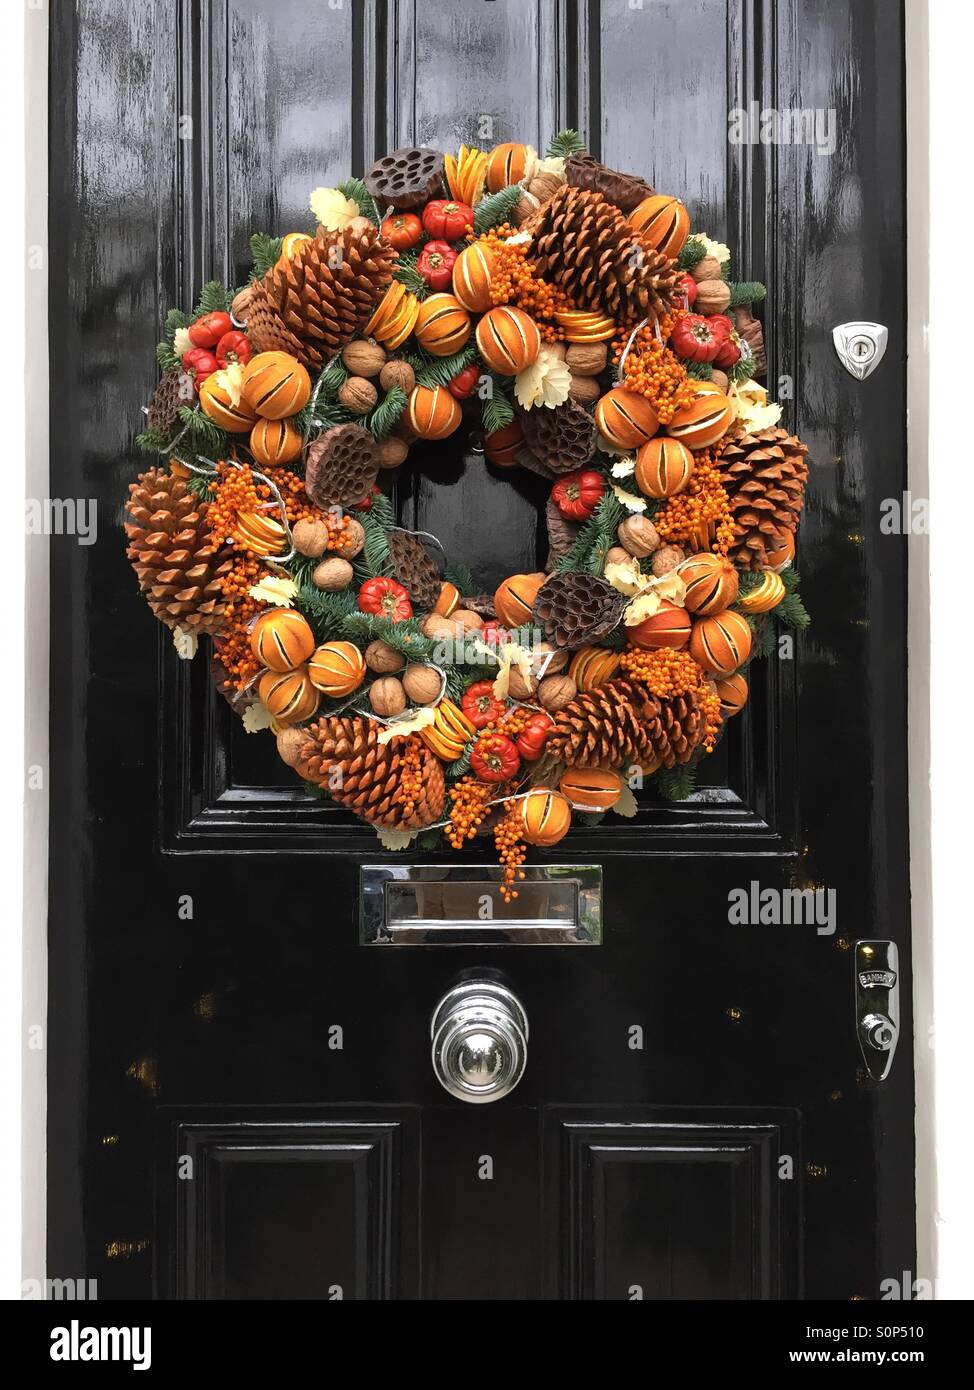 Christmas wreath on a door in Chelsea, England. - Stock Image